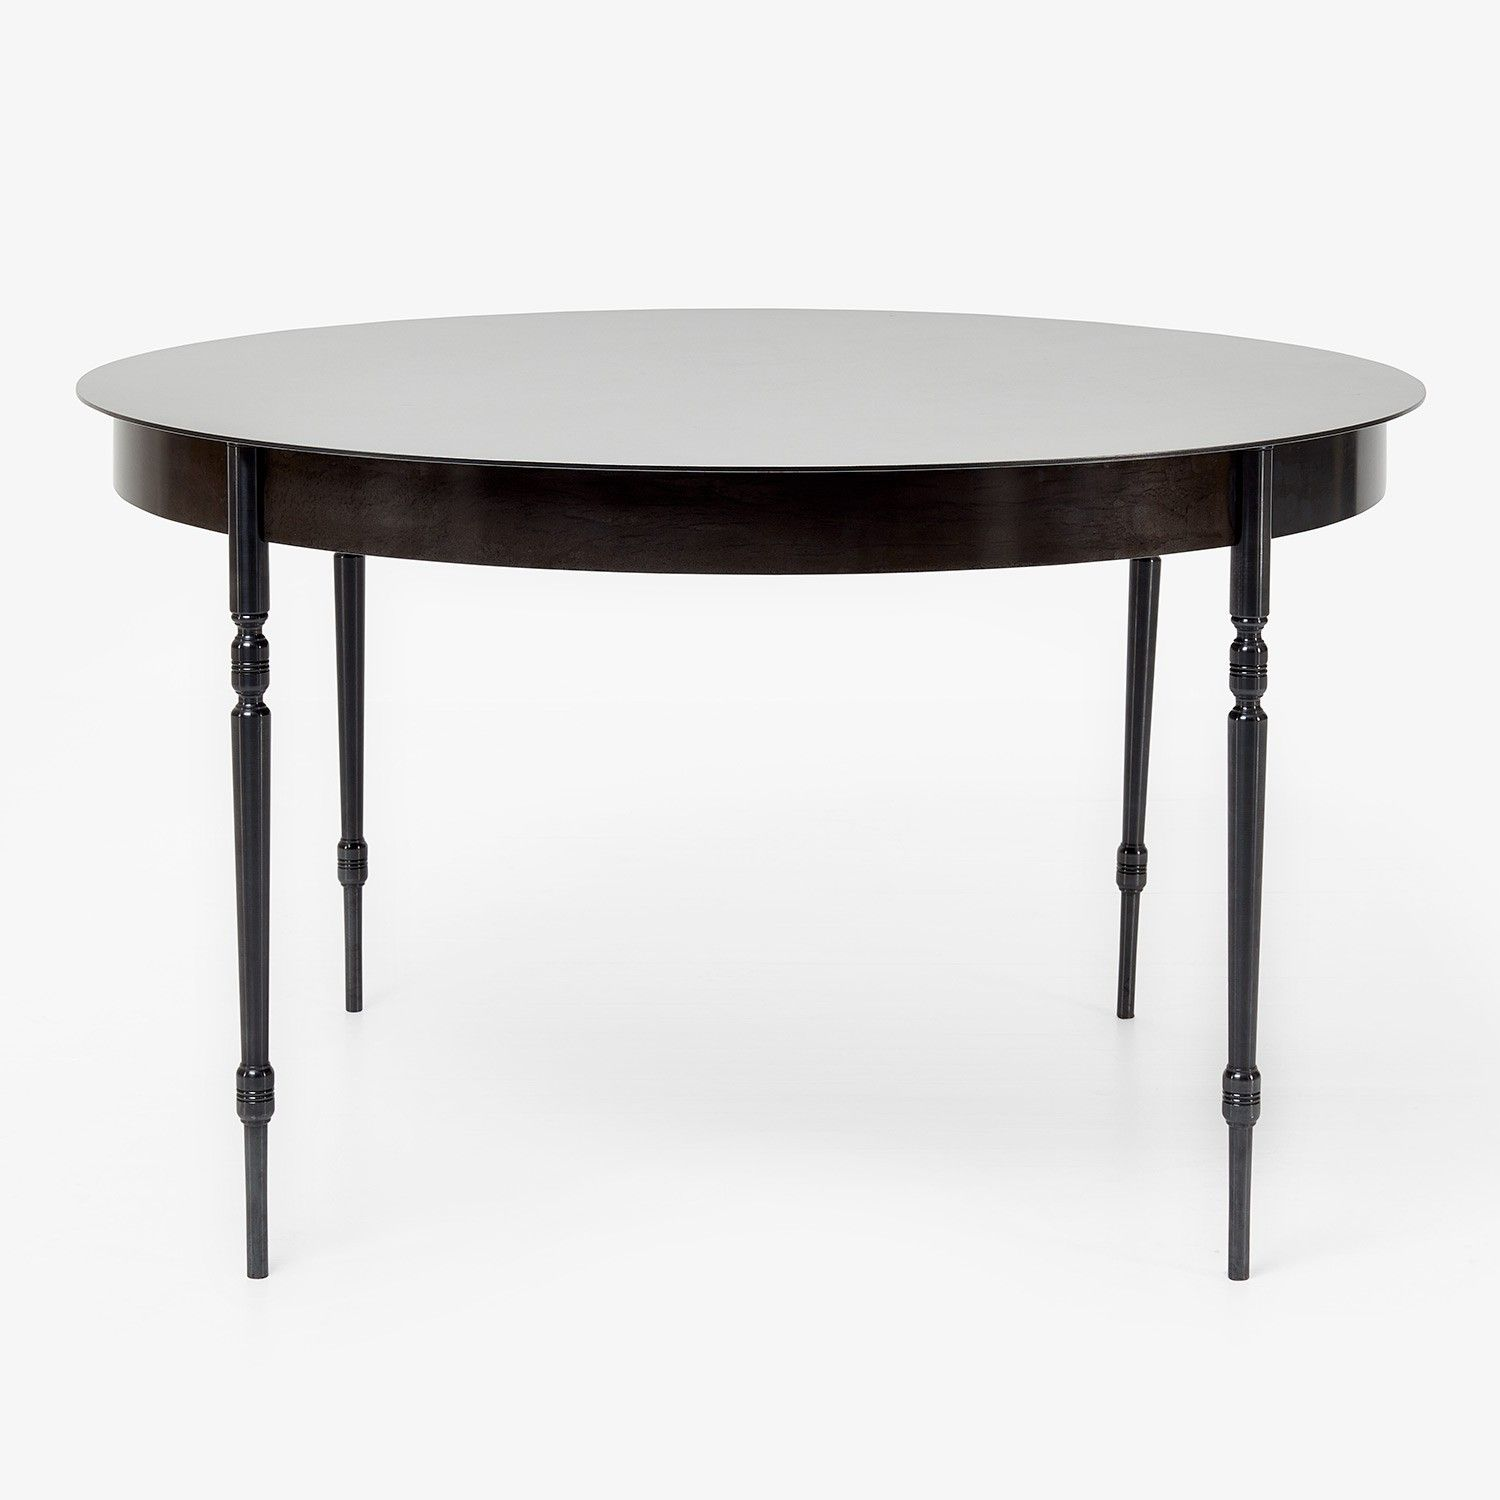 Discover The Gregor Jenkin Turned Round Dining Table At ABC Carpet Home Full Of Depth This Is Crafted From Hand Selected Scrap